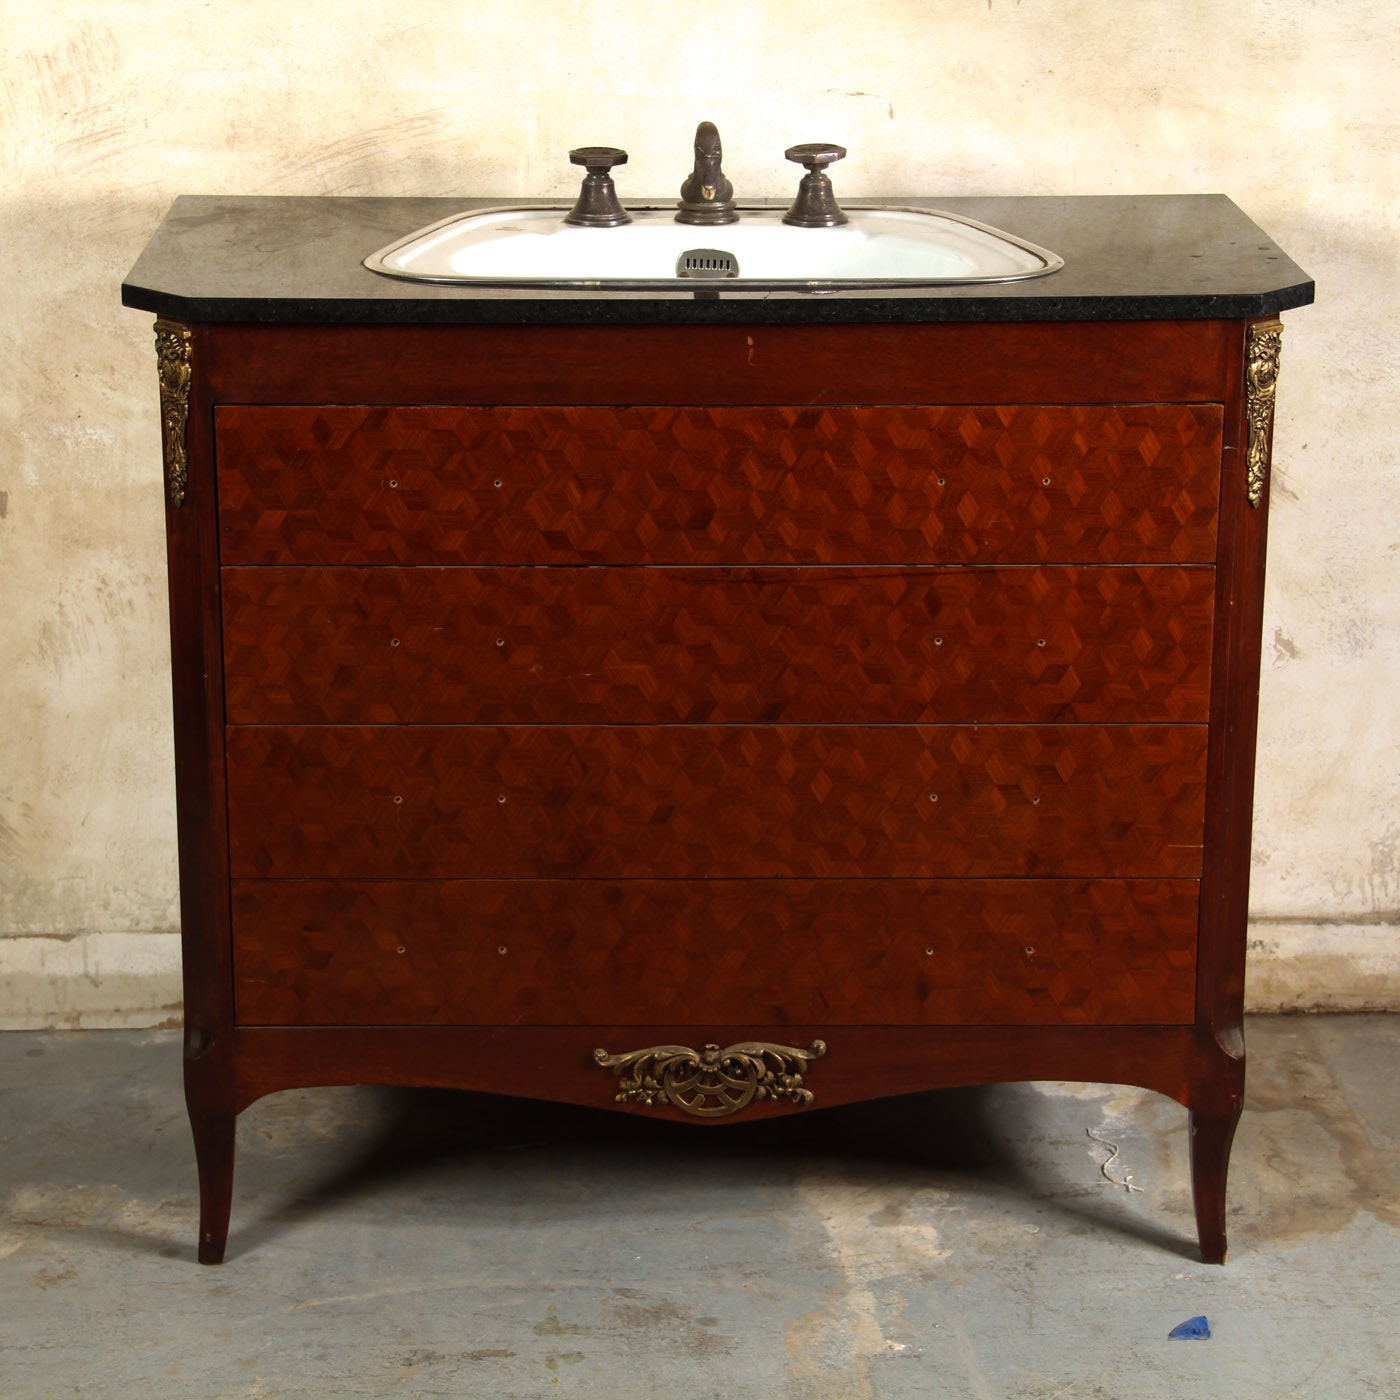 New Vintage Bathroom Vanity Minimalist